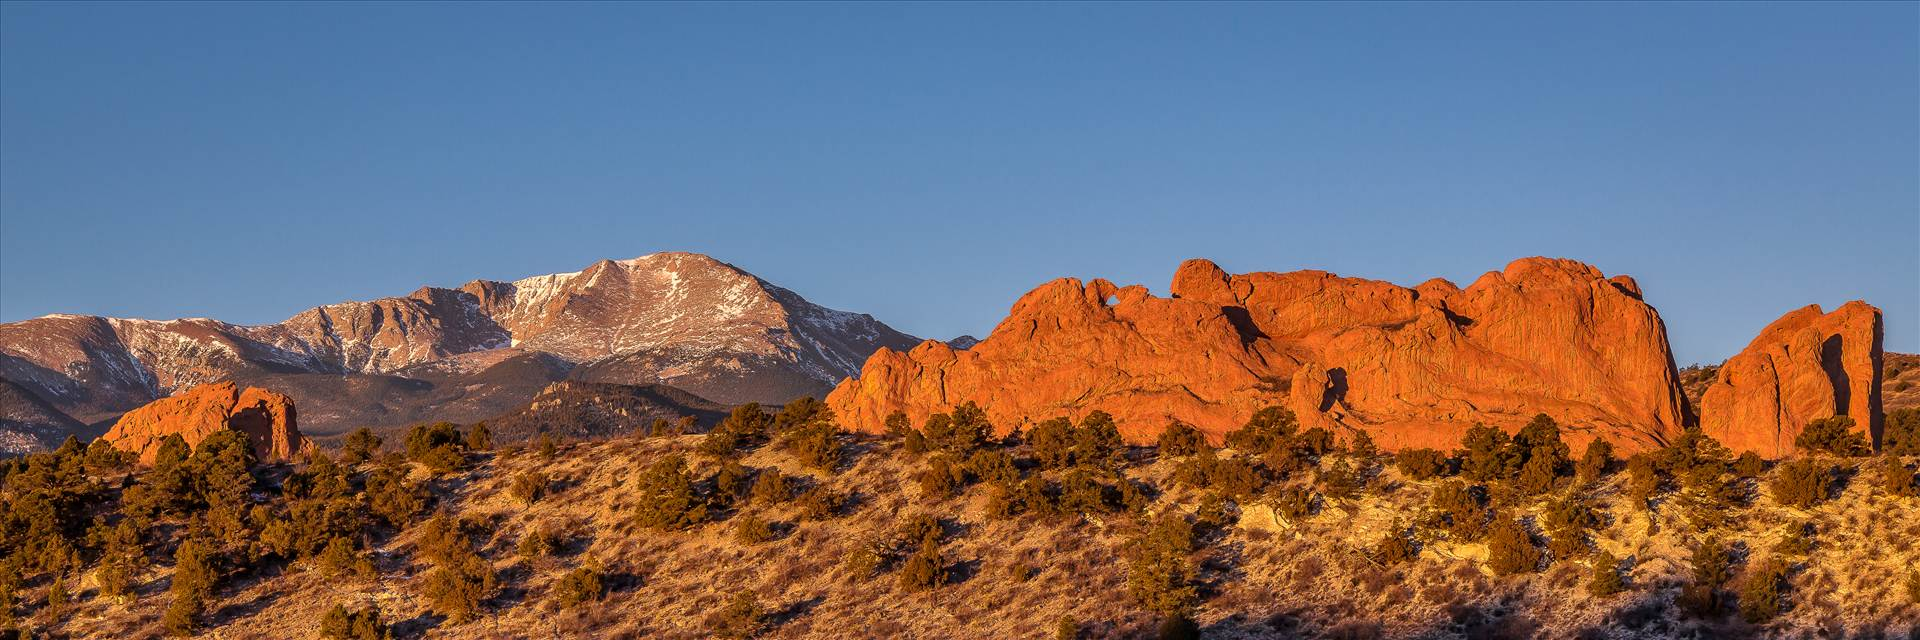 Garden of the Gods Sunrise - The Garden of  the Gods with Pike's Peak in the distance. by Scott Smith Photos